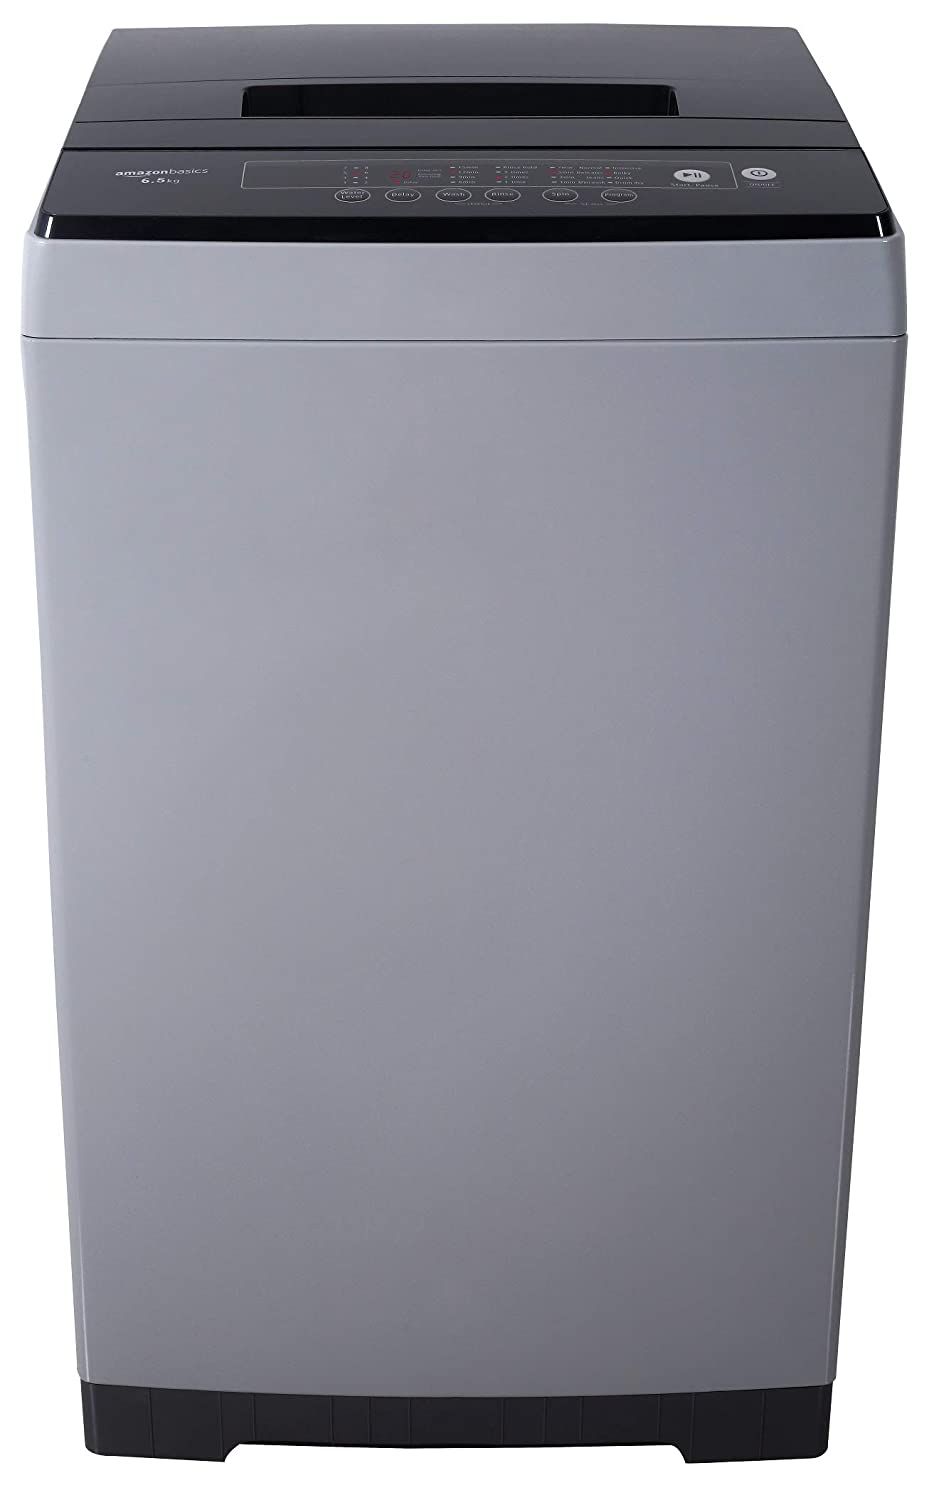 AmazonBasics 6.5 kg Top Load Washing Machine